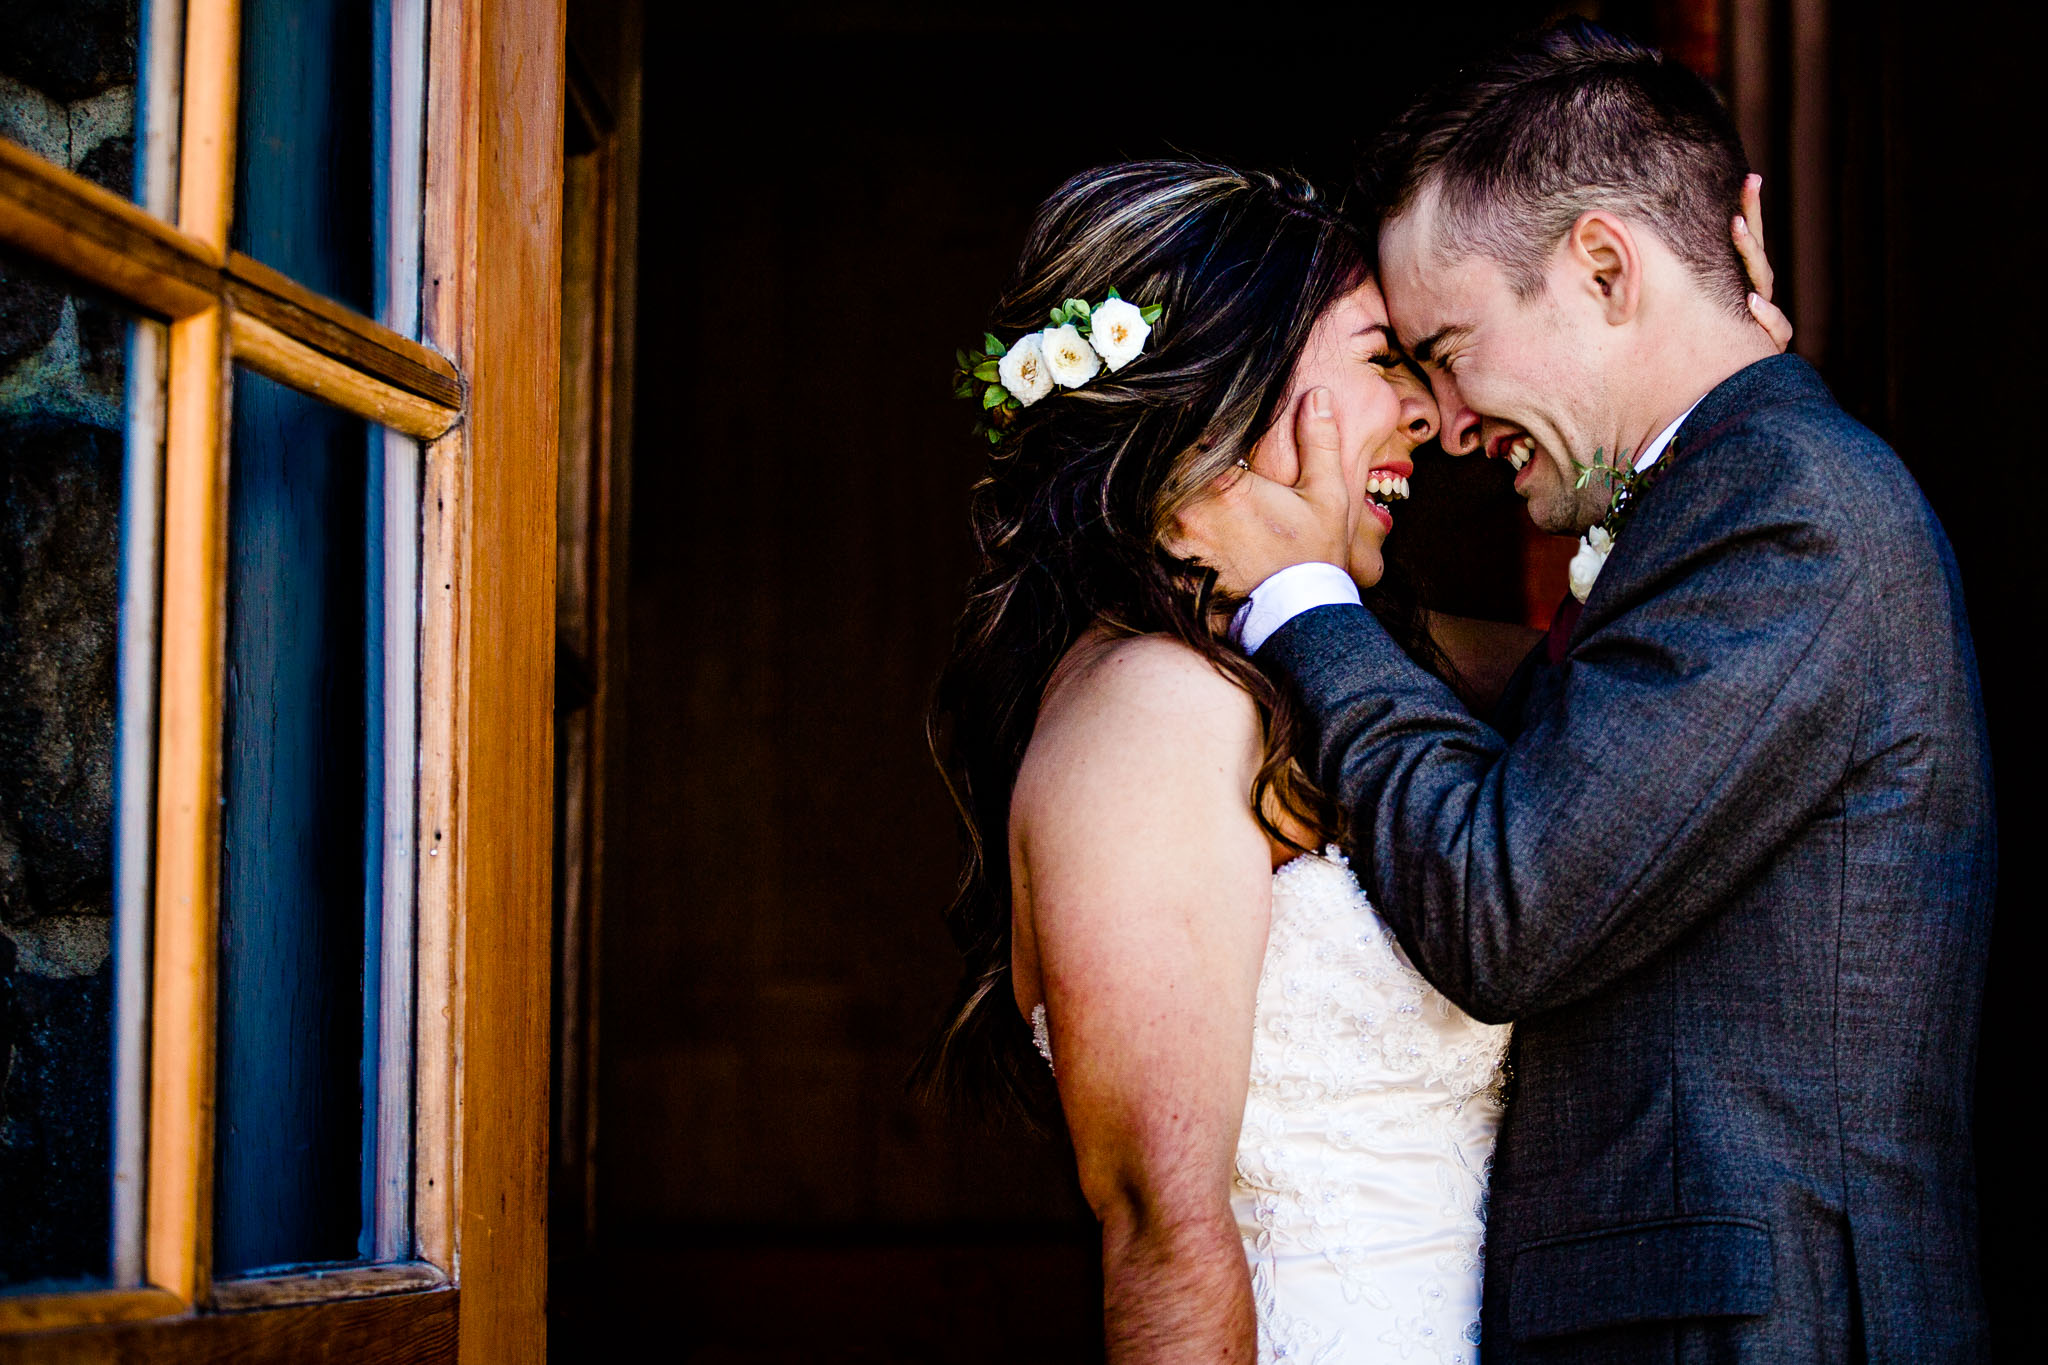 Bride and Groom crying together at Timberline Lodge JOS studios